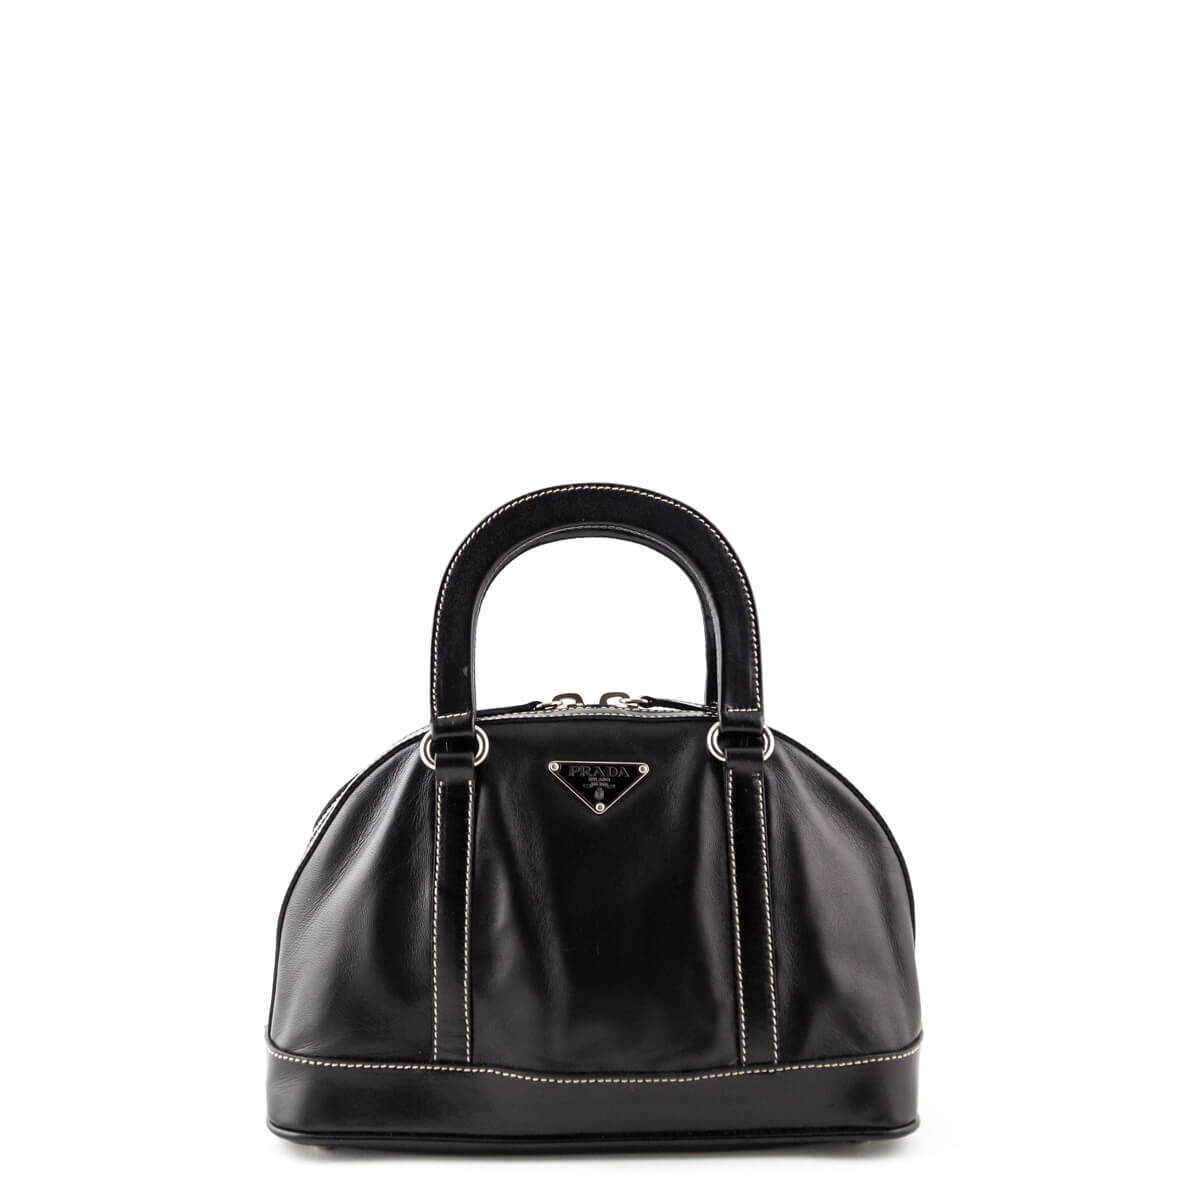 8e4f4b3006 ... sale prada black leather mini dome top handle bag love that bag  preowned authentic designer a8f2e